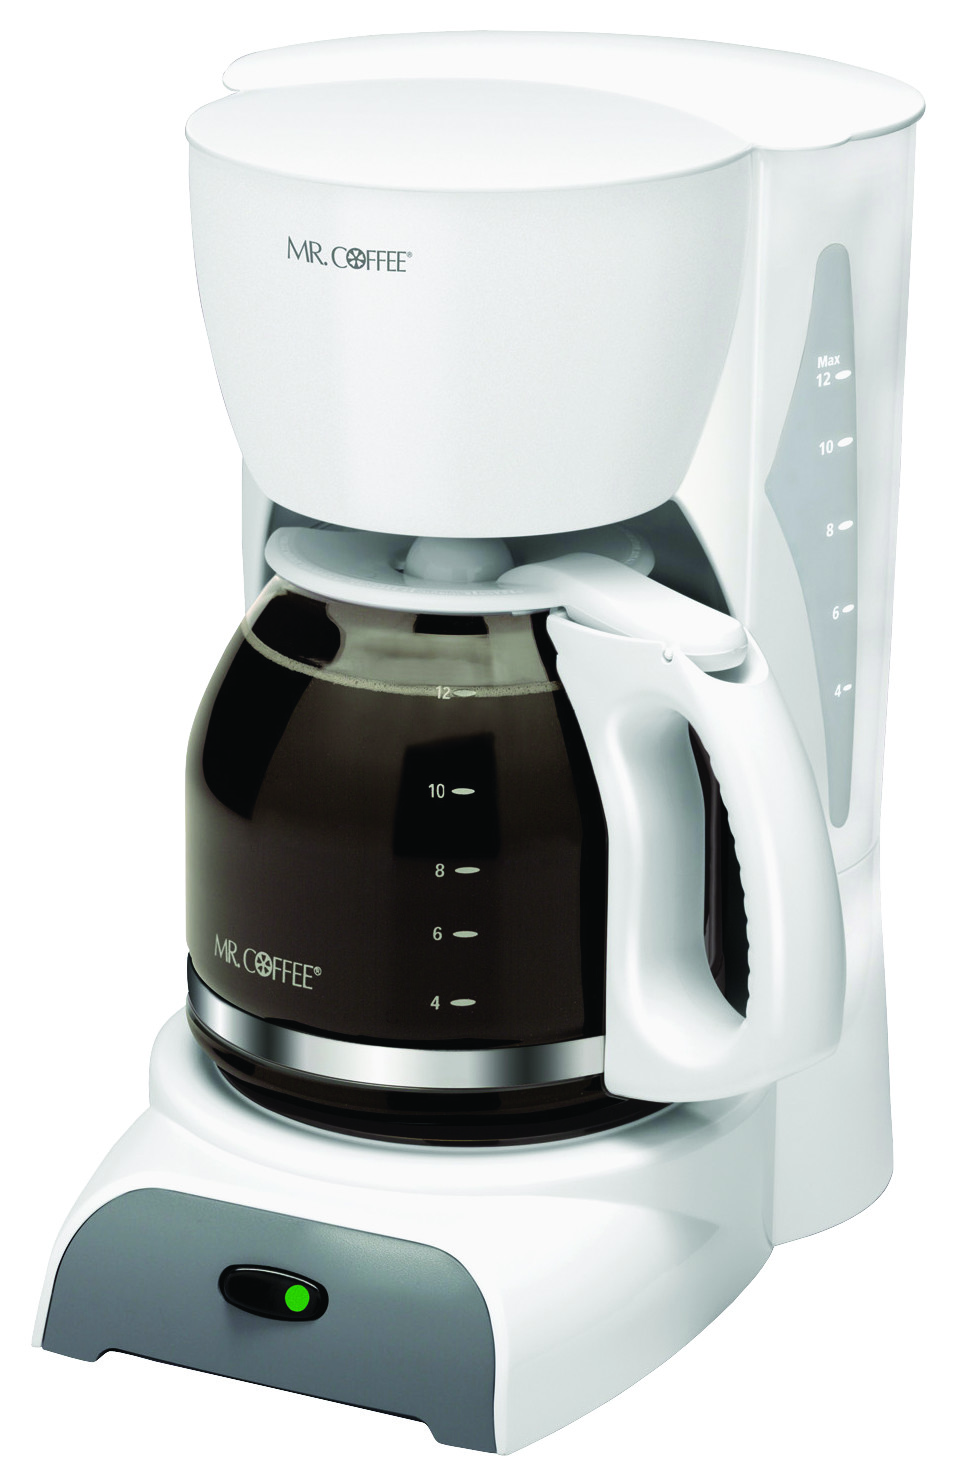 Mr Coffee Sk12 Rb Coffee Maker White 12 Cup 072179230267 1